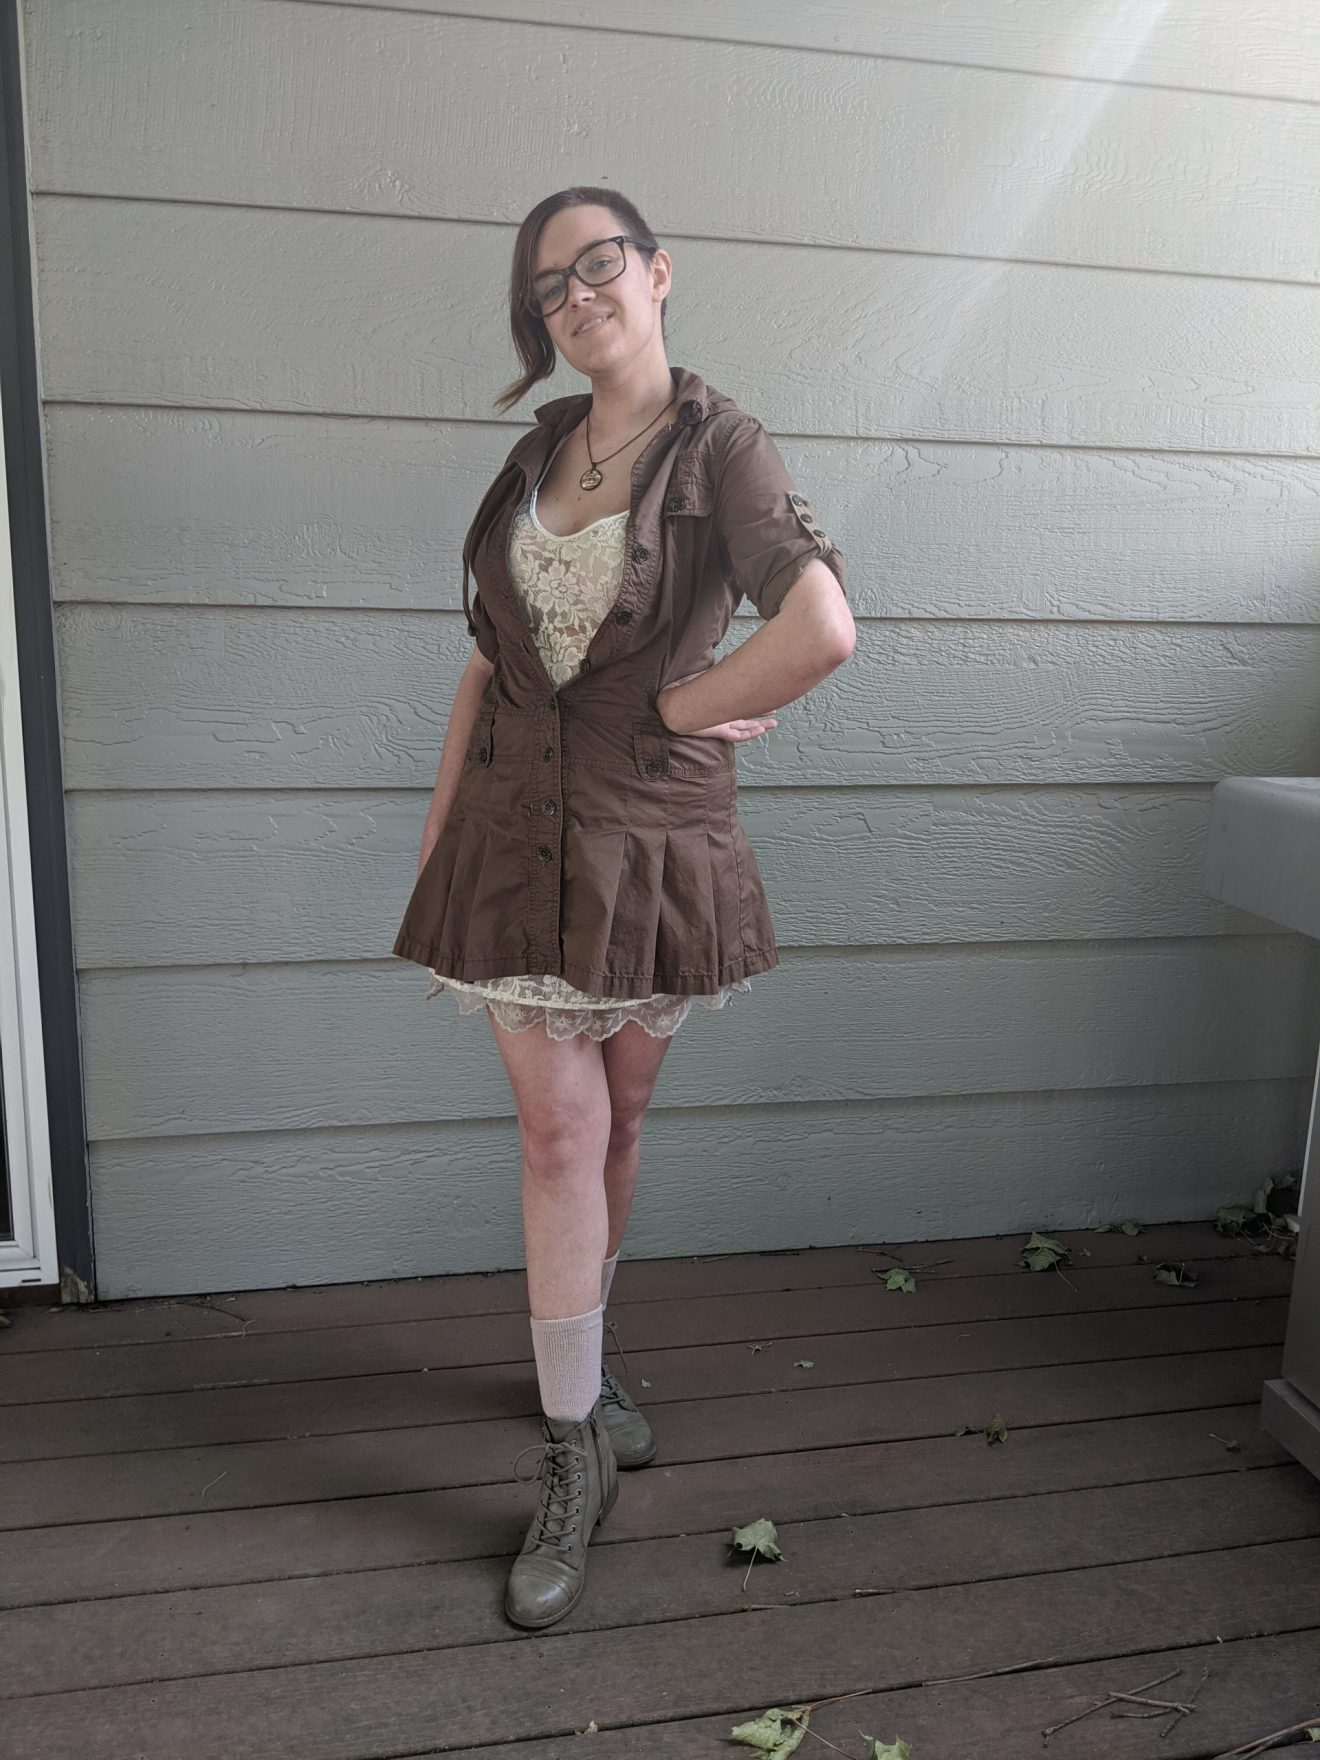 Trailblazing Alissa Ackerman Story Behind The Cloth fashion blog vintage antique adventurous outfit 10 scaled